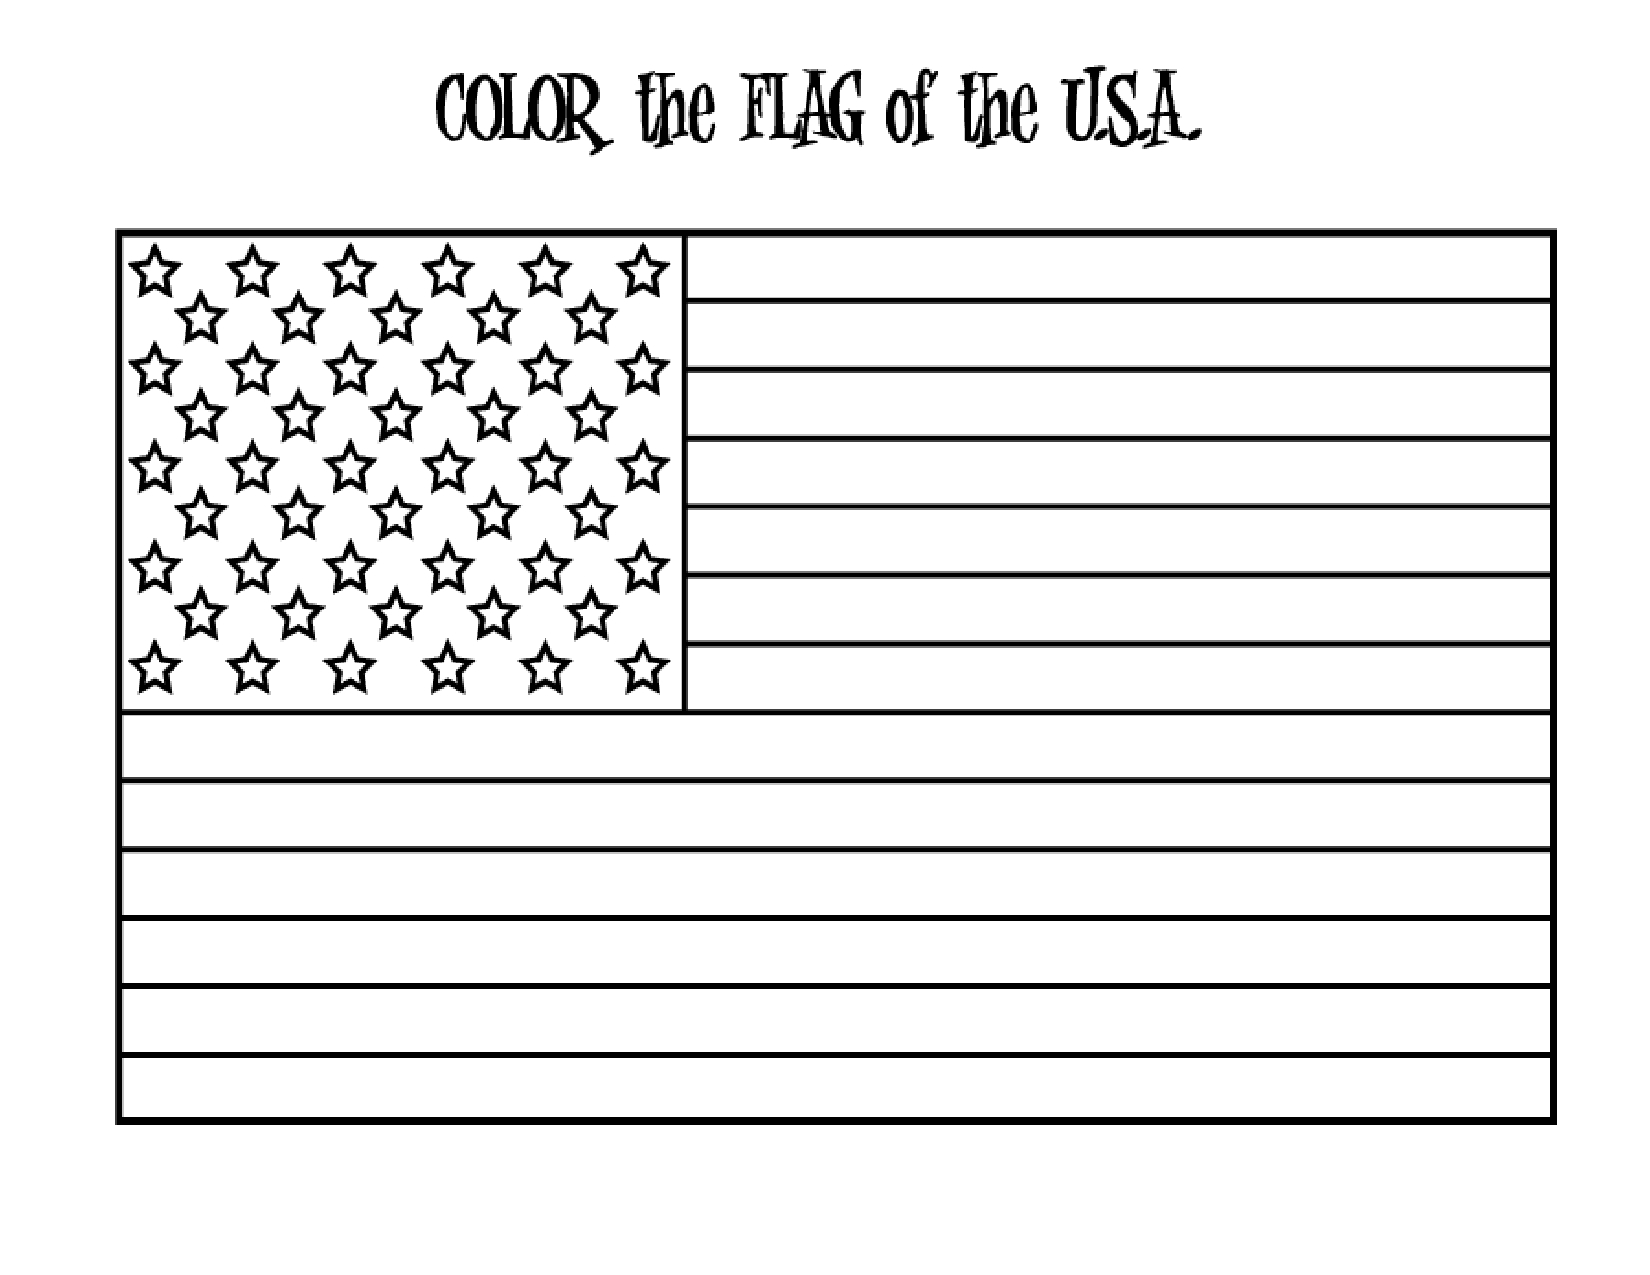 Free American Flag Printable, Download Free Clip Art, Free Clip Art - Free Printable American Flag Coloring Page